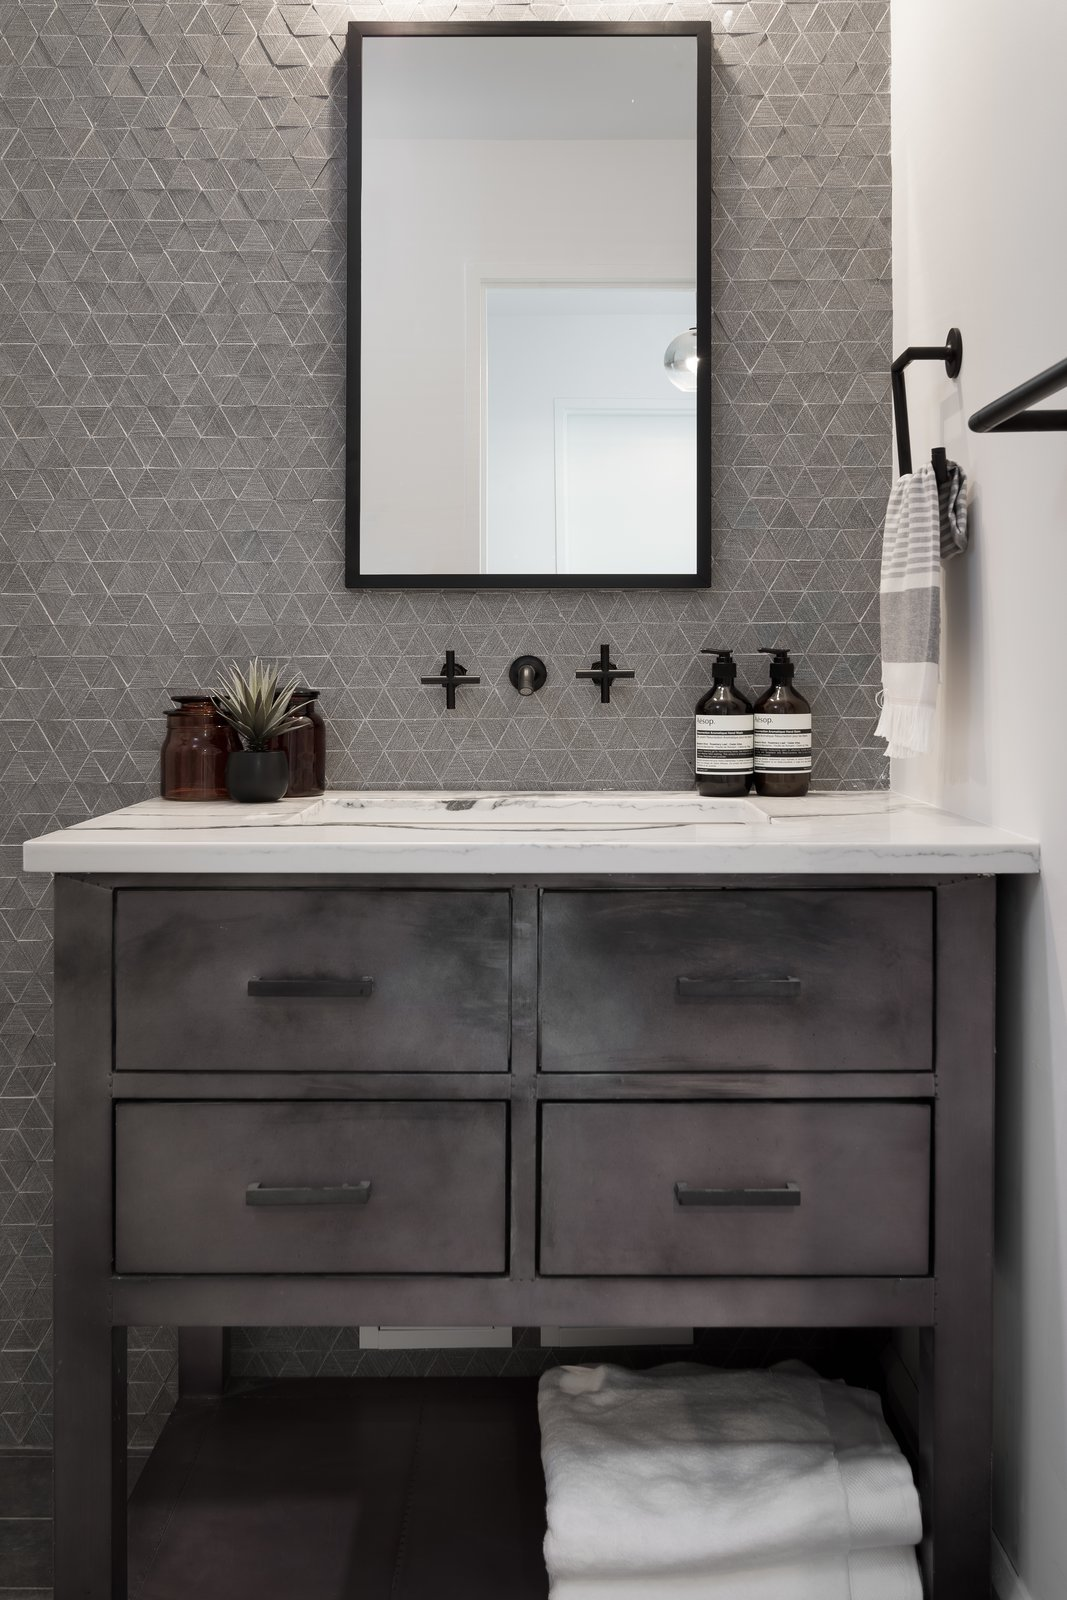 6 Bathroom Tile Ideas For Your Next Project Tileist By Tilebar